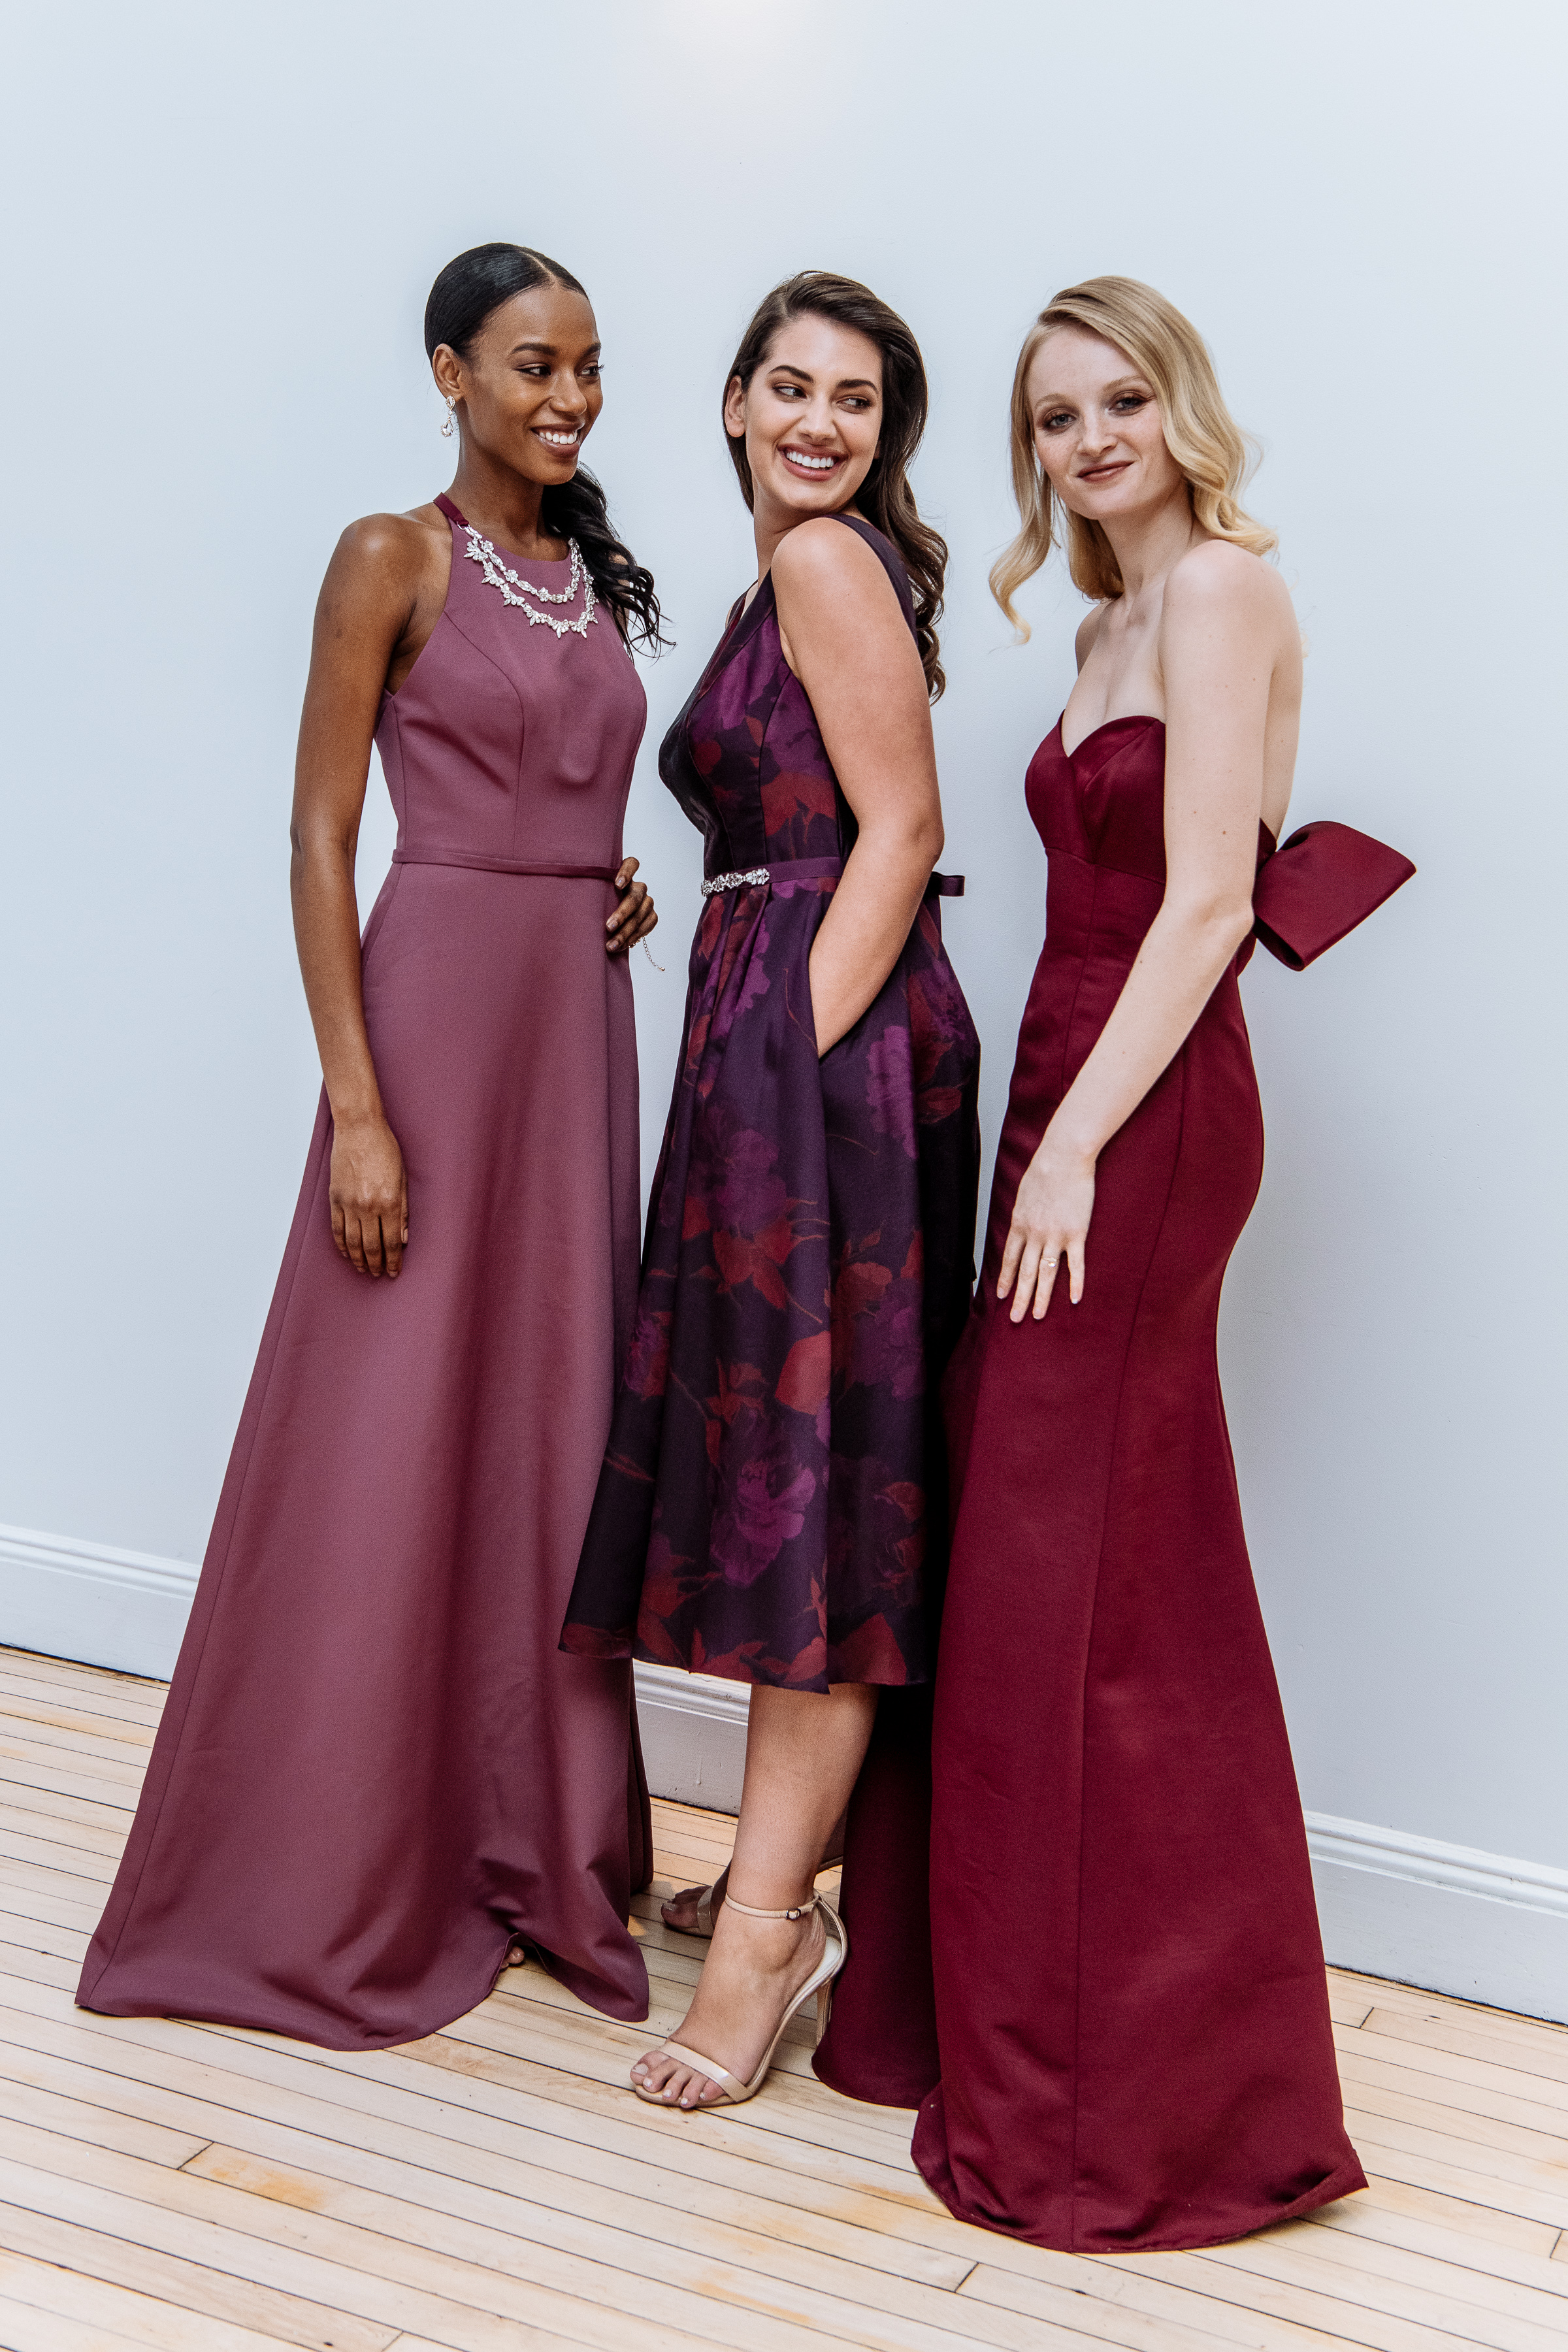 A new twist on timeless elegance for bridesmaids. See more Fall 2018 bridesmaid trends on the David's Bridal blog.